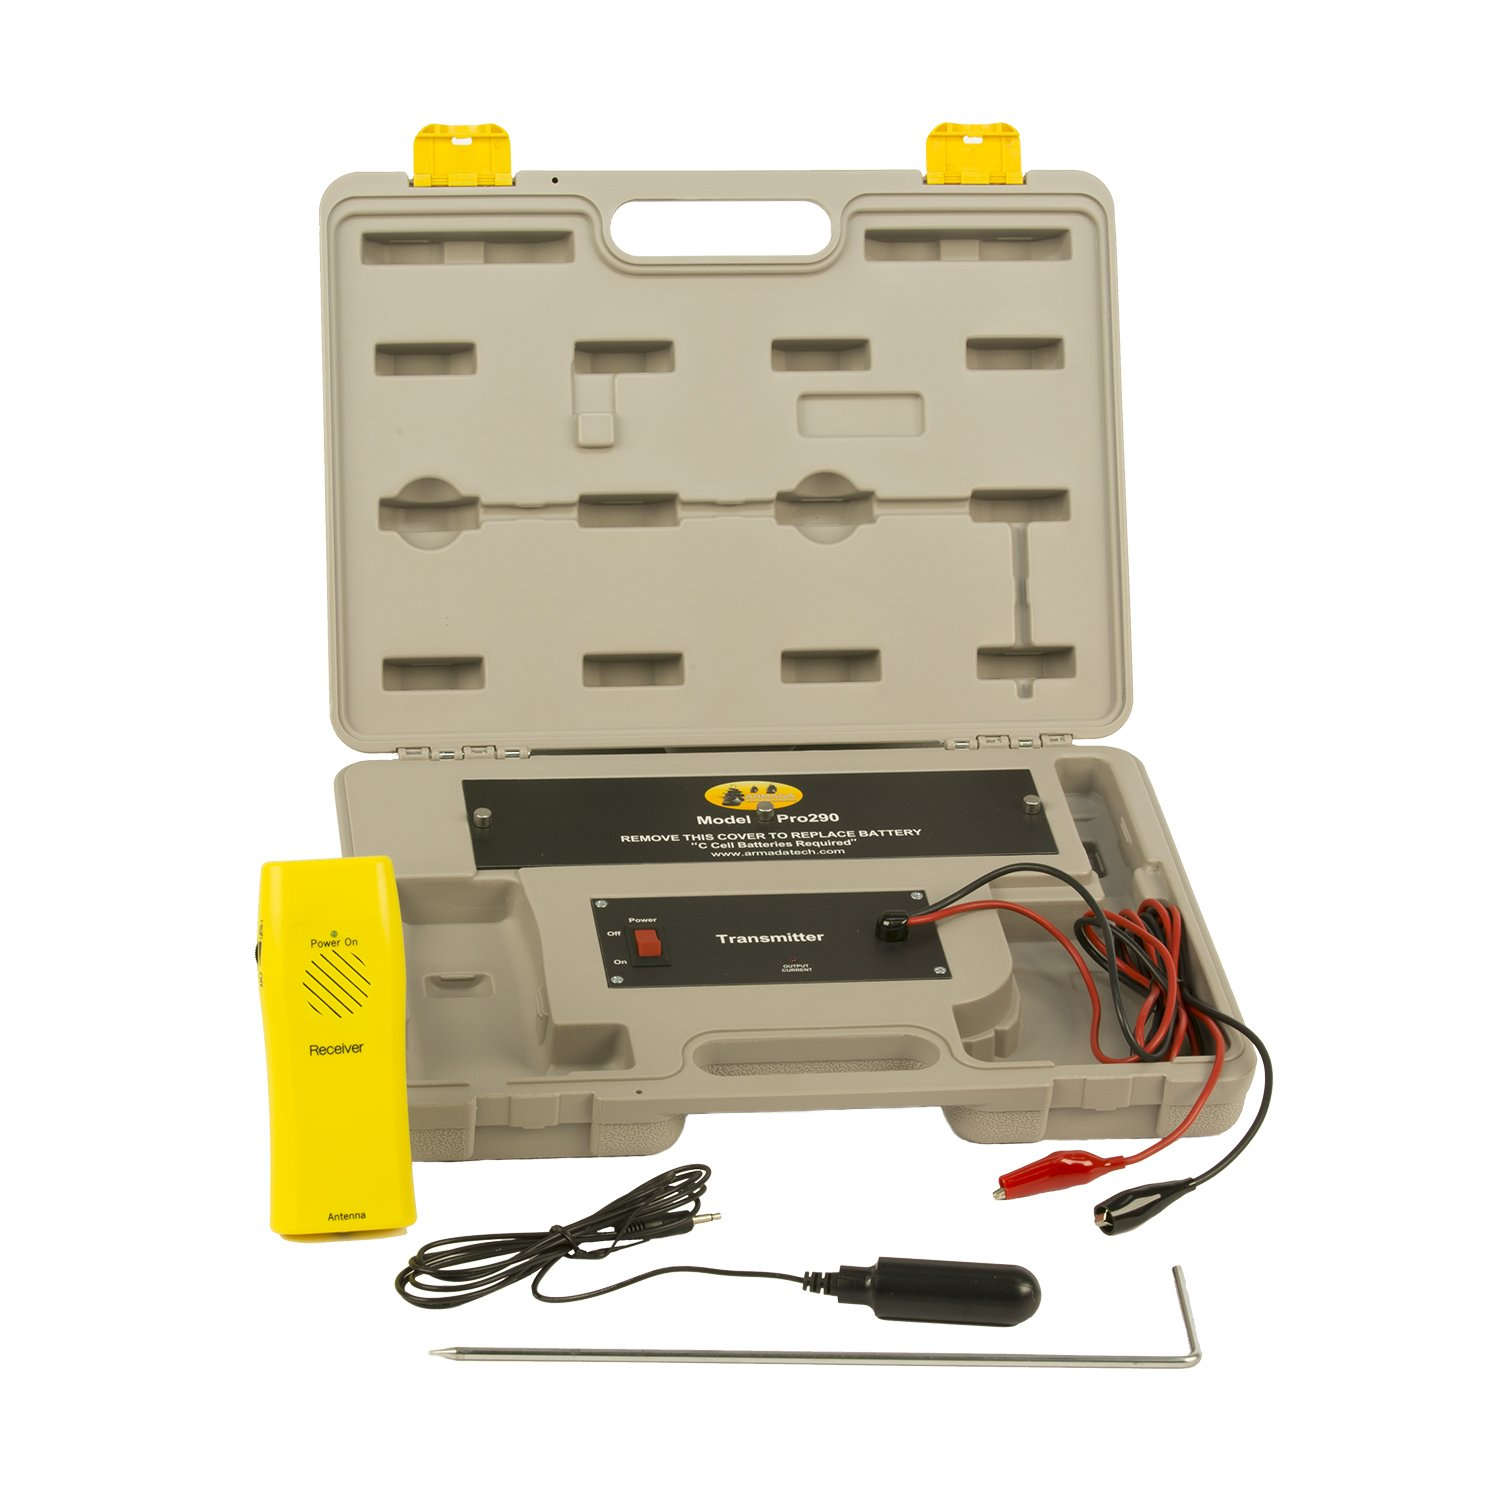 Armada Technologies Pro290 Underground Wire and Cable Locator